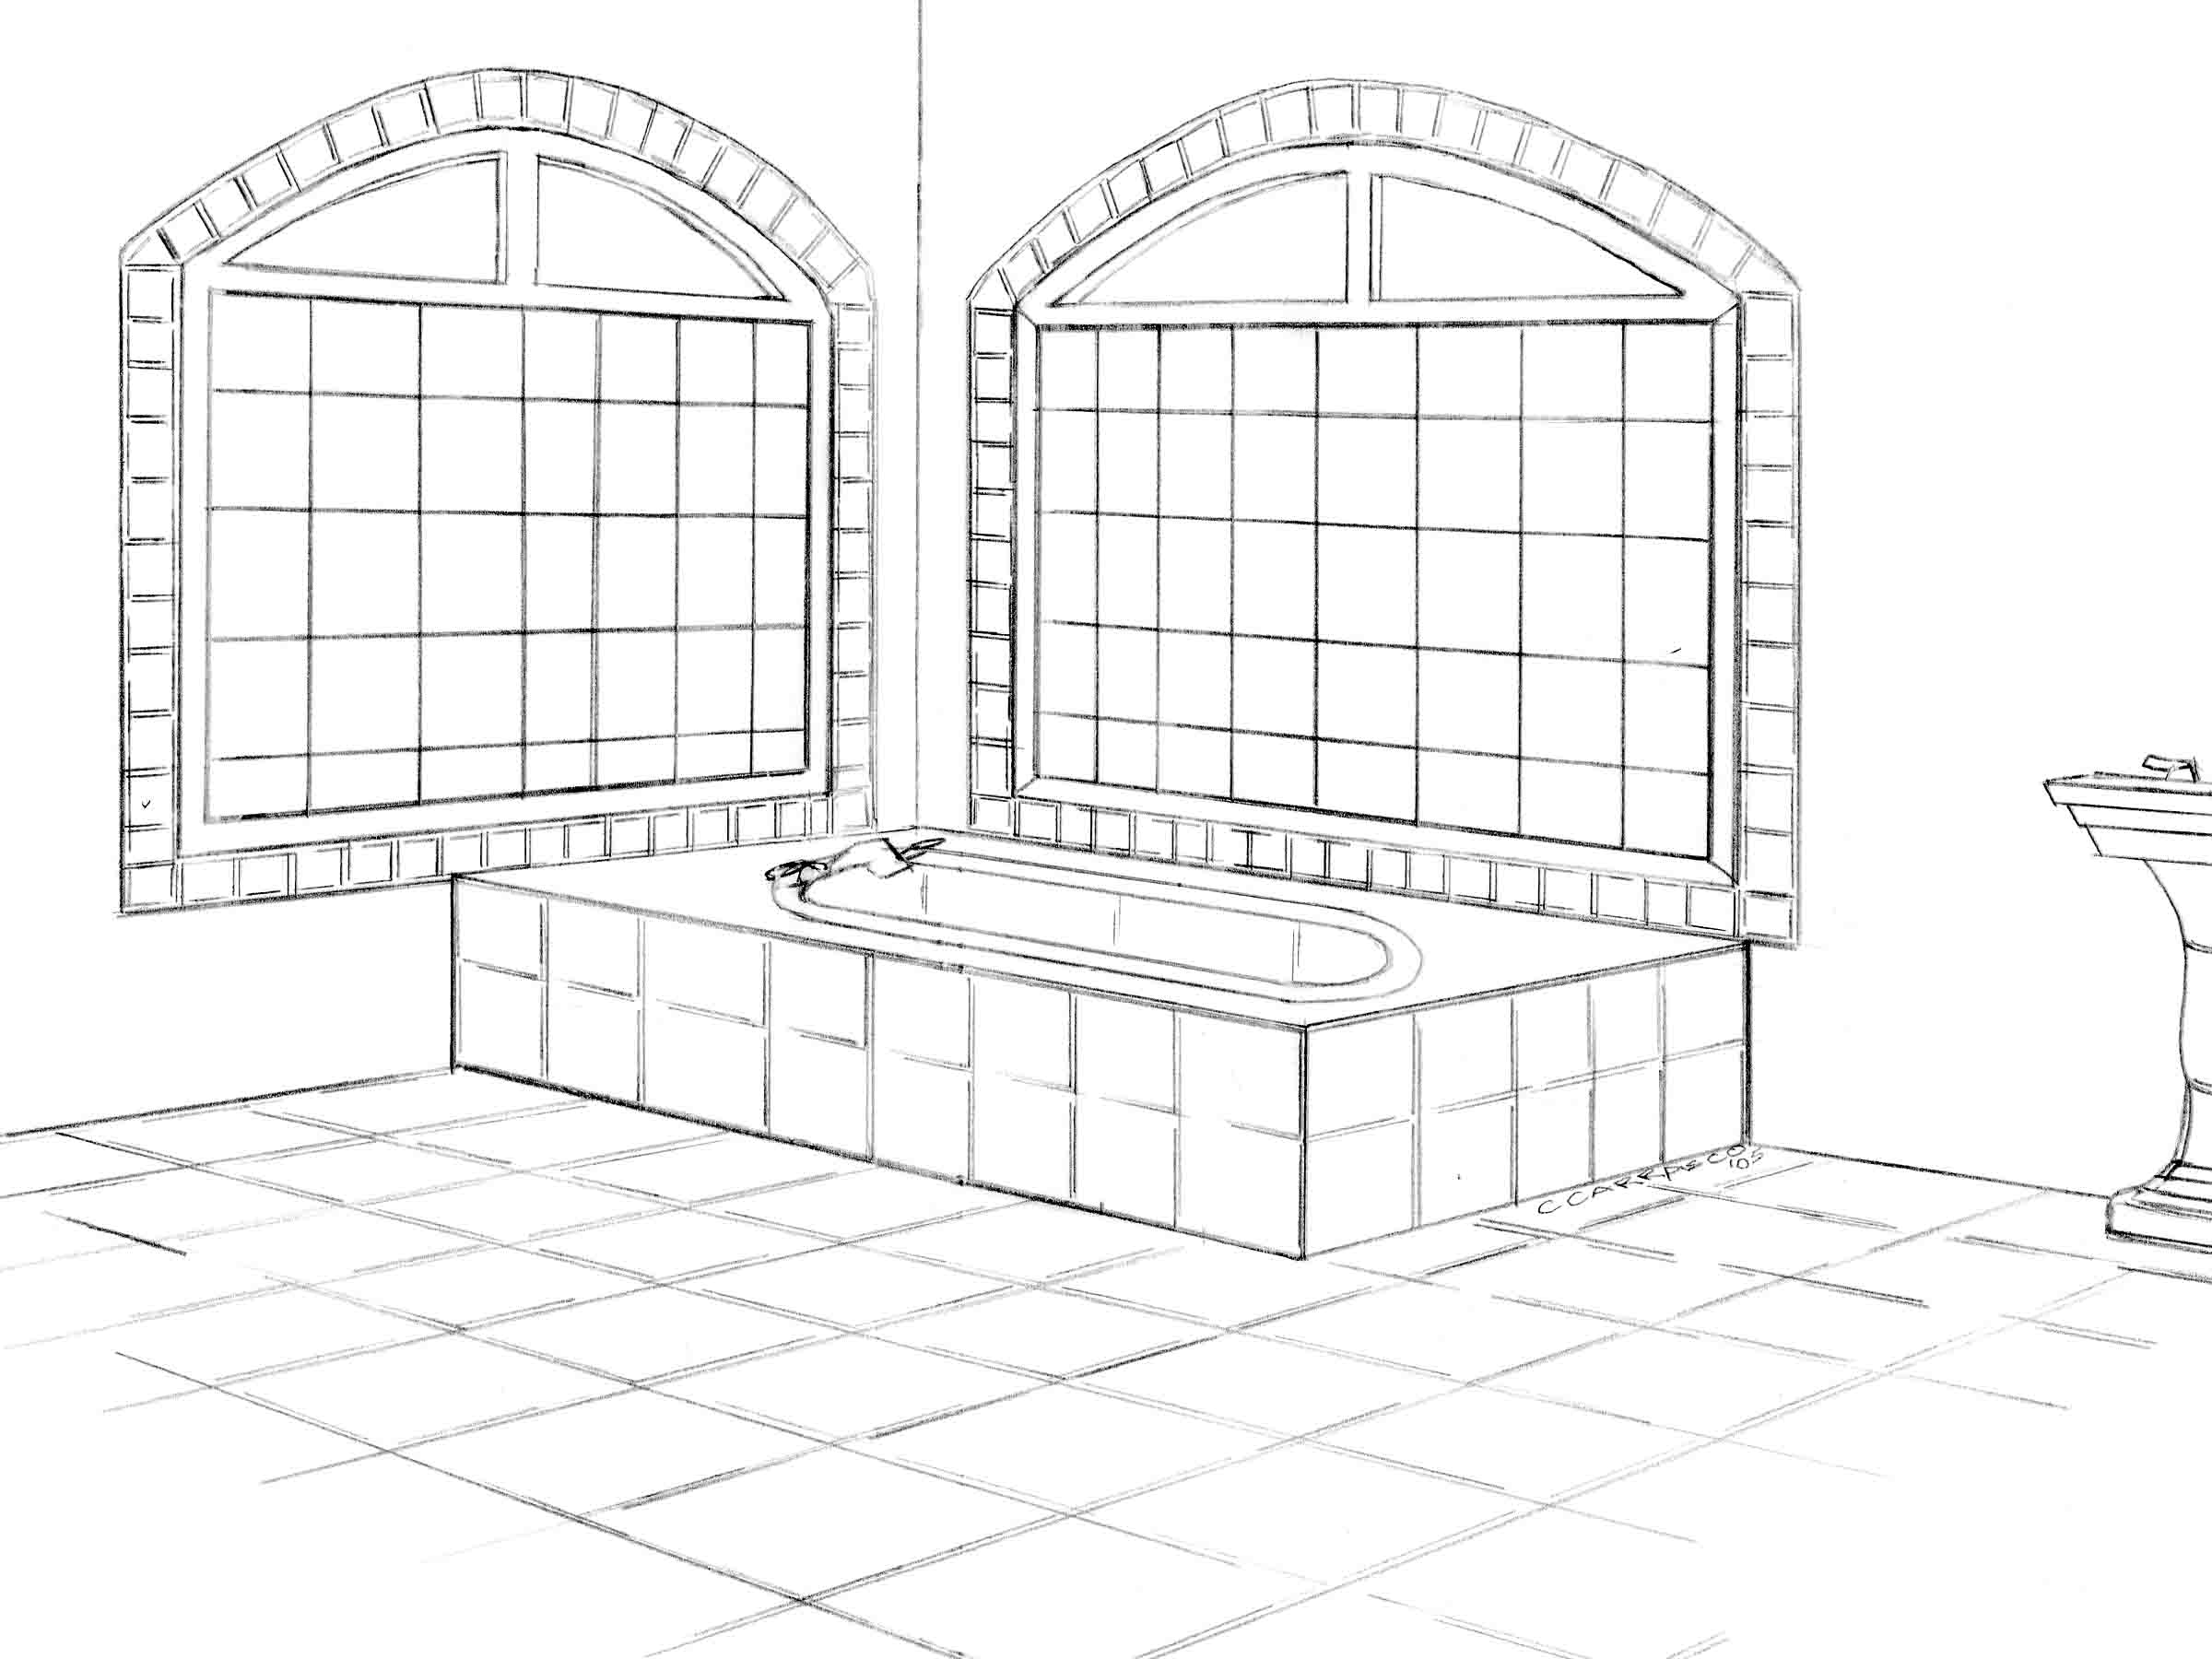 Bathroom perspective drawing - Master Bathroom Spanish Colonial Perspective Drawn By Hand In Pencil Before Rendered